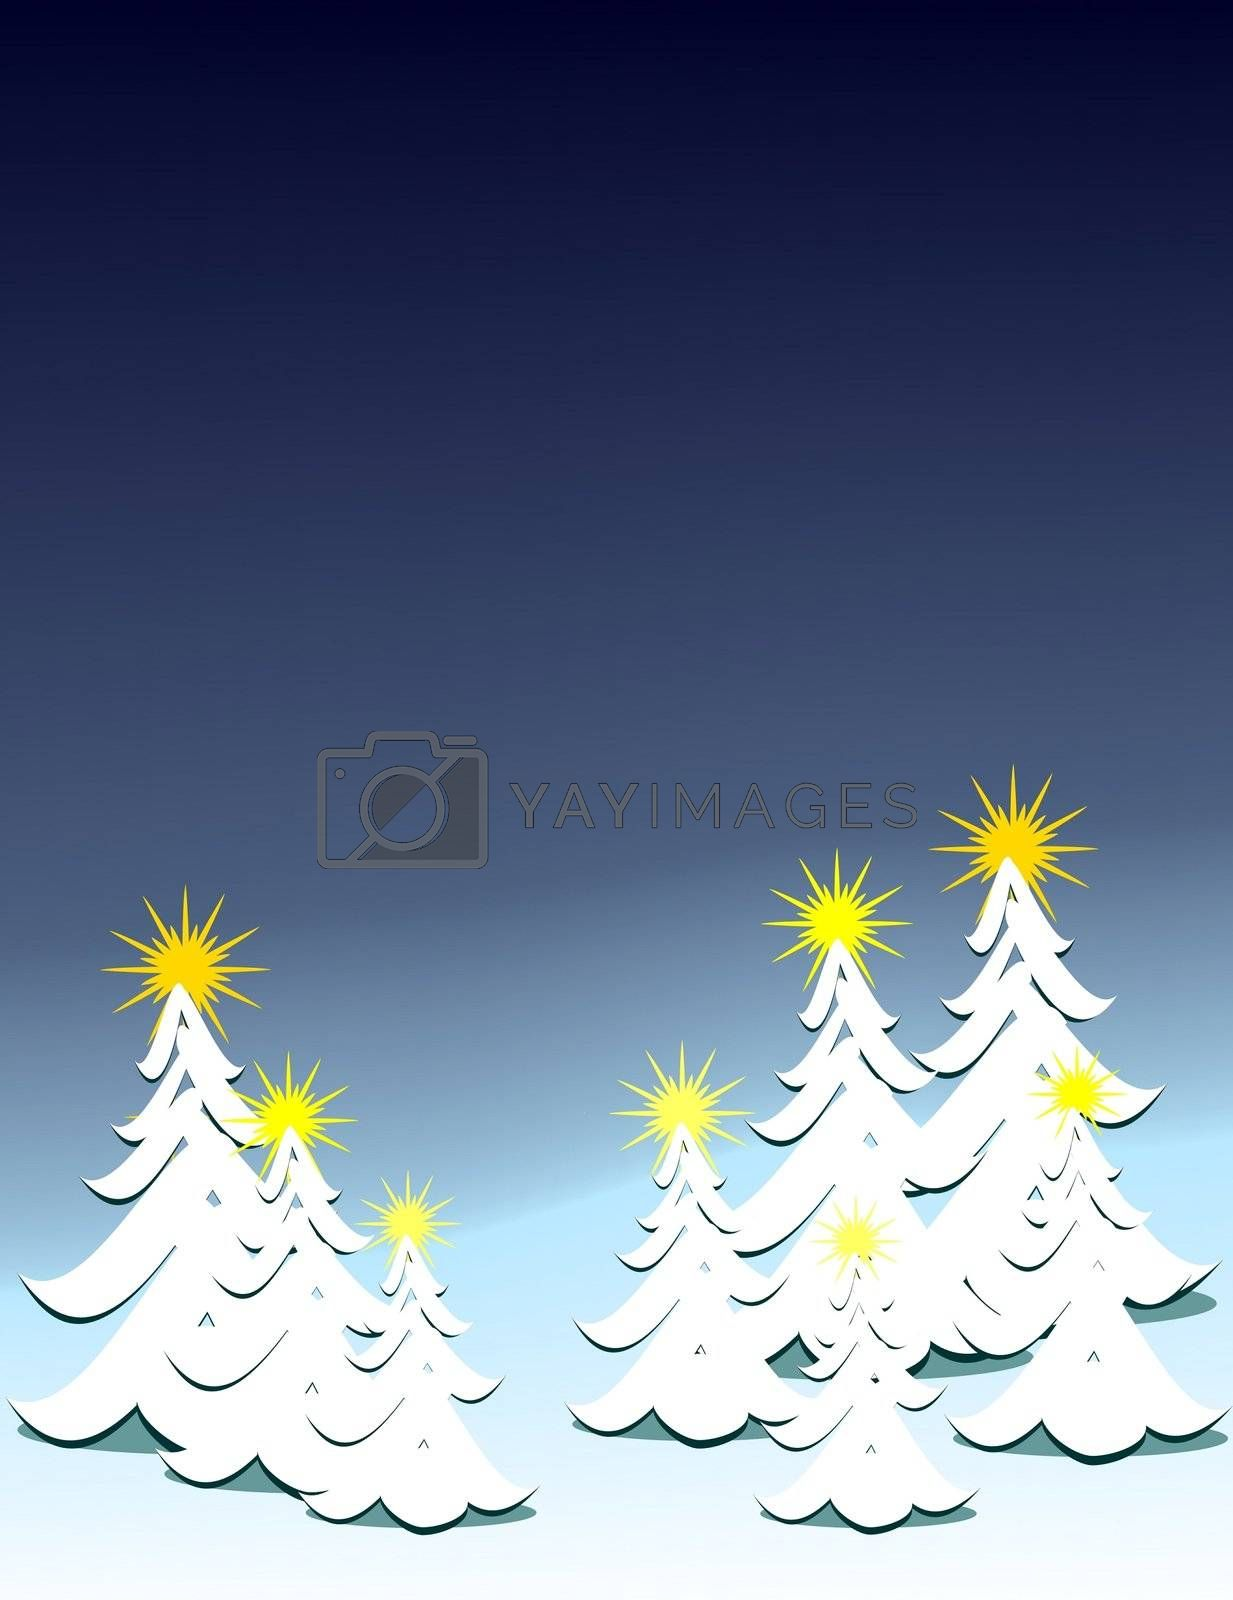 blue background with snow covered Christmas trees